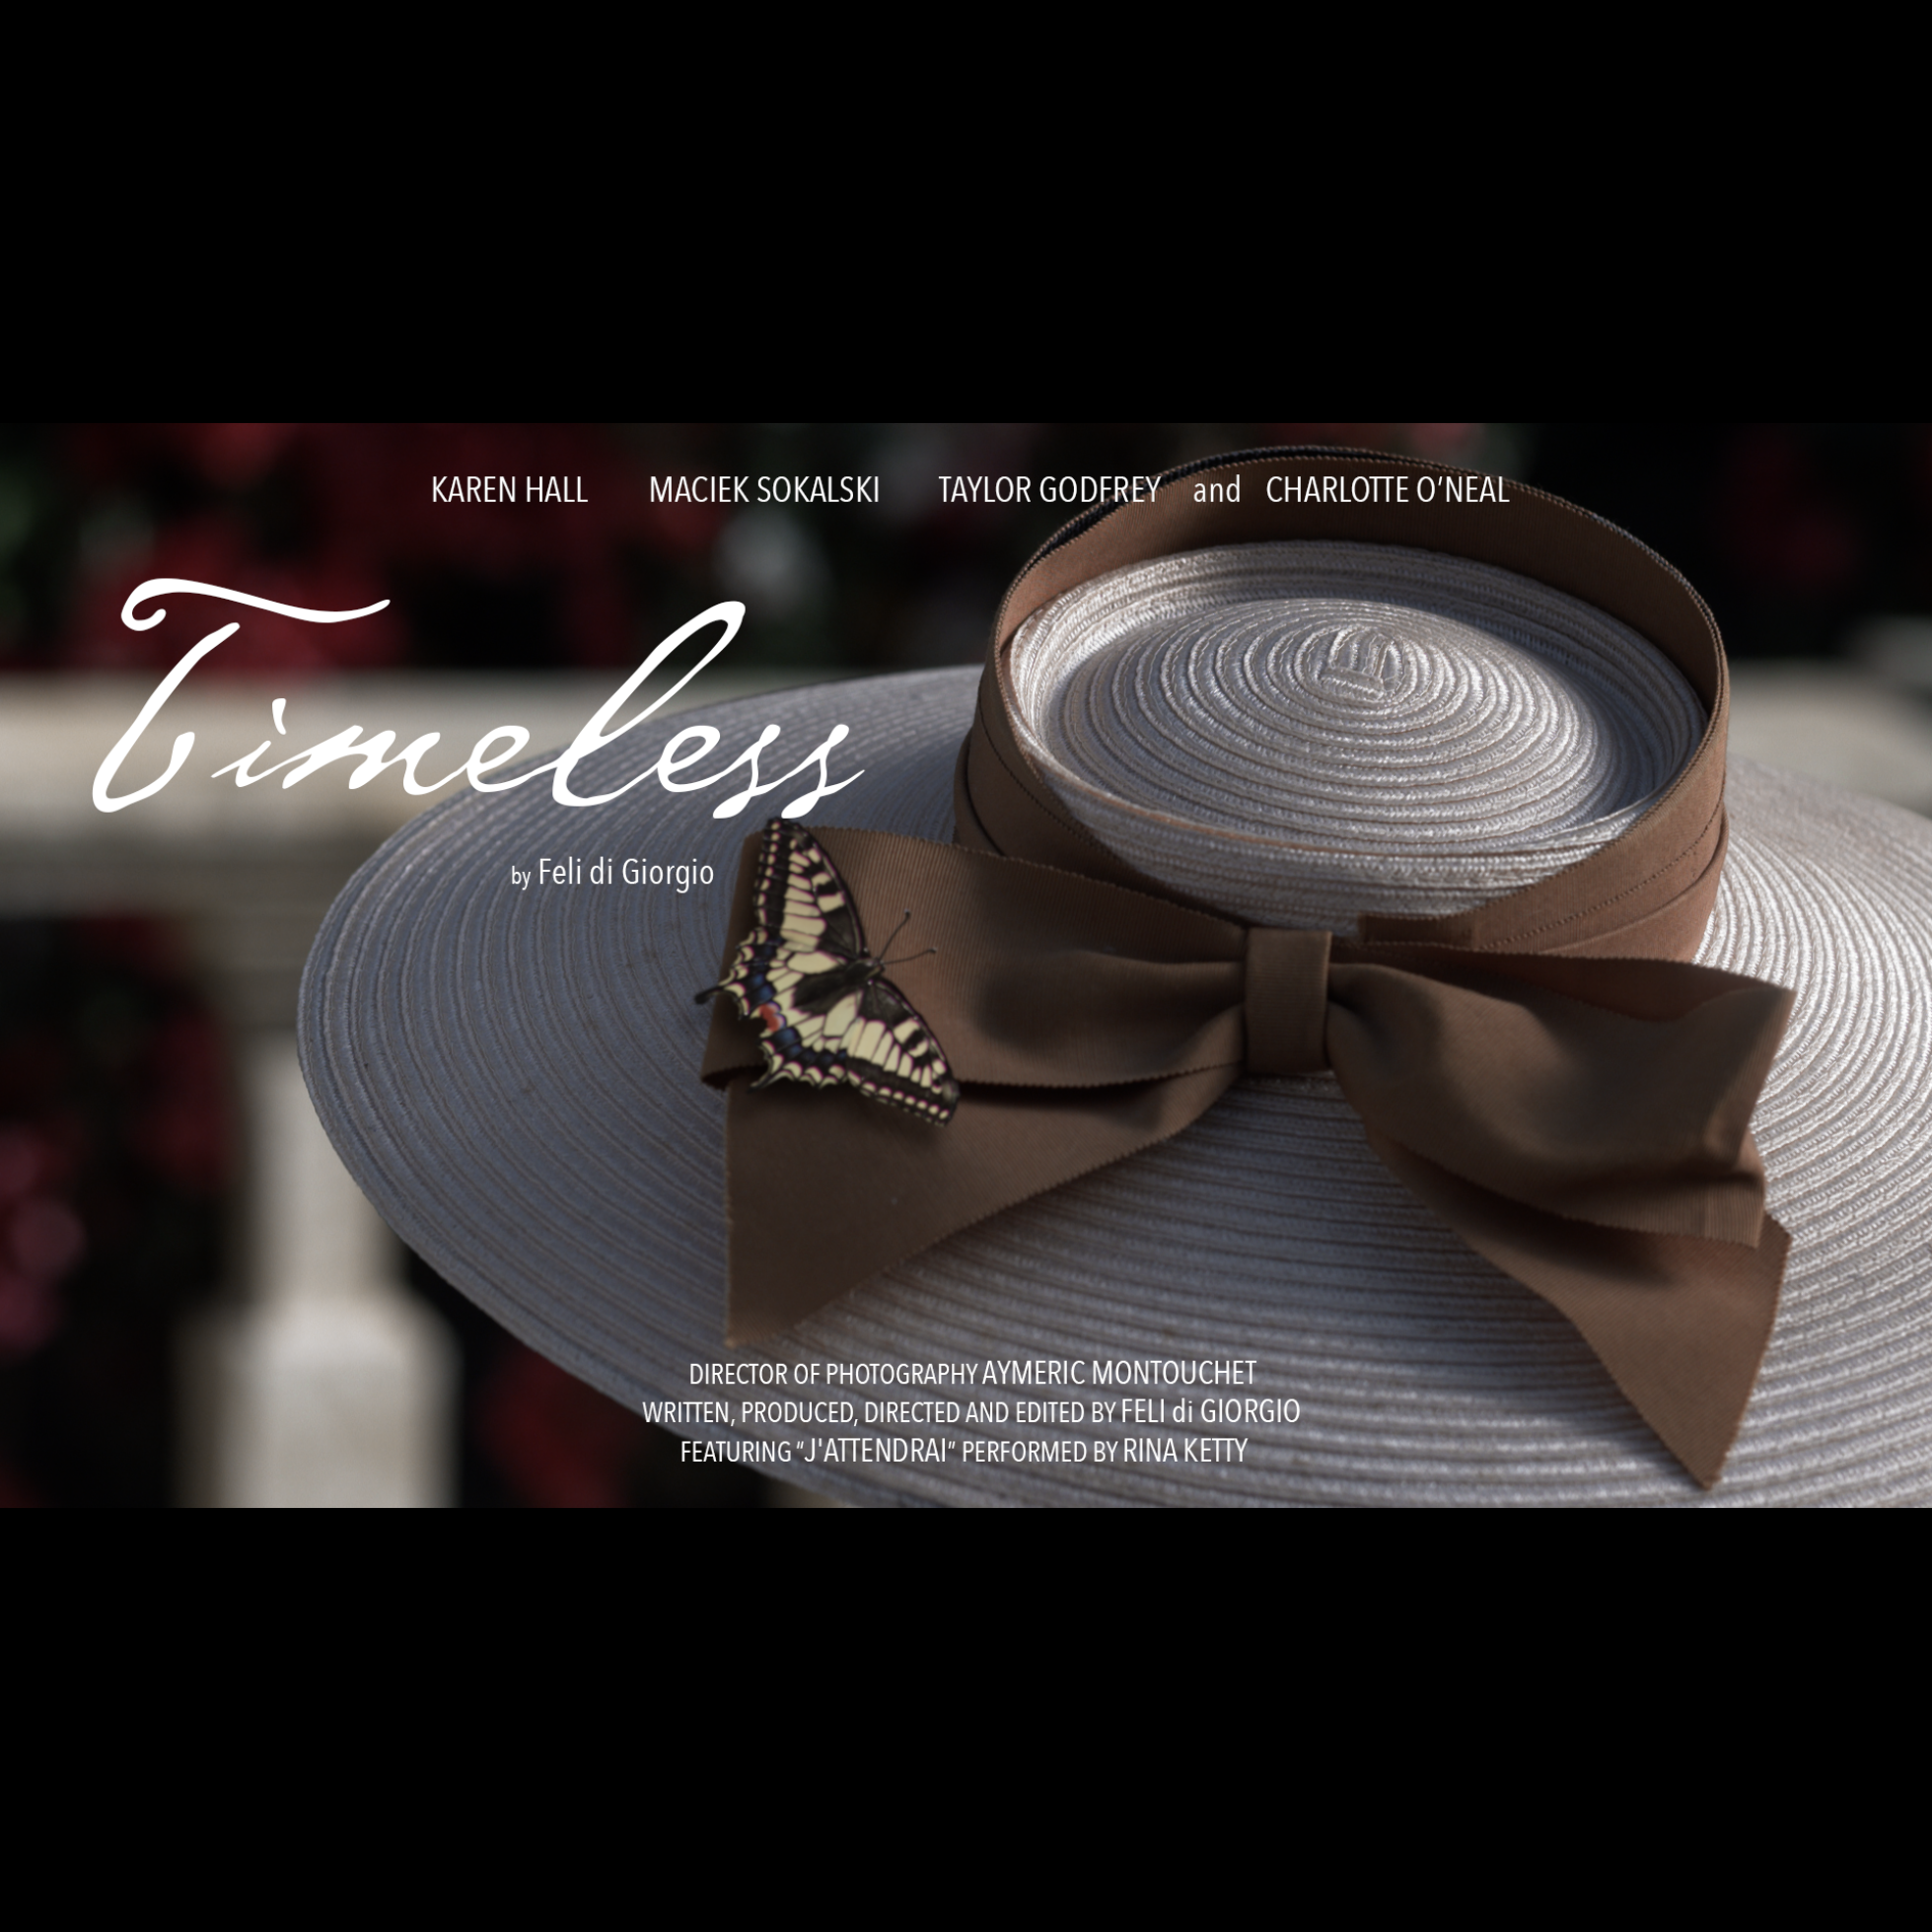 CHANEL 'TImeless'  A spec commercial for Chanel set in the 1940's. Celebrating the heritage of Chanel, it tells the story of a woman and her prized Chanel day suit, as it accompanies her over the years.